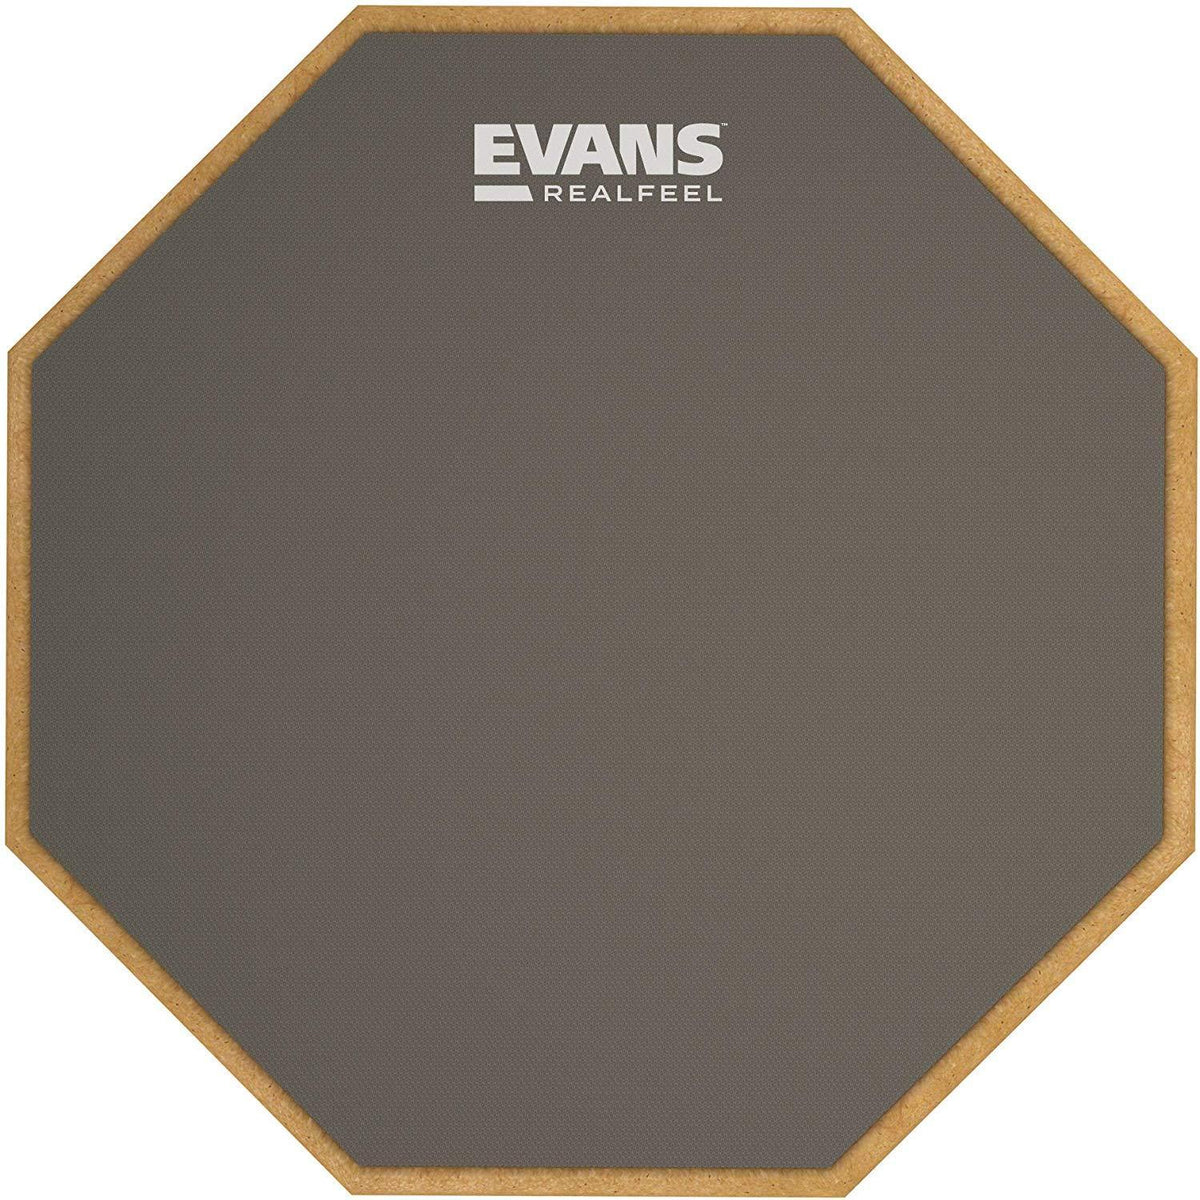 Evans Percussion Accessories Evans RealFeel 2-Sided Speed and Workout Drum Pad